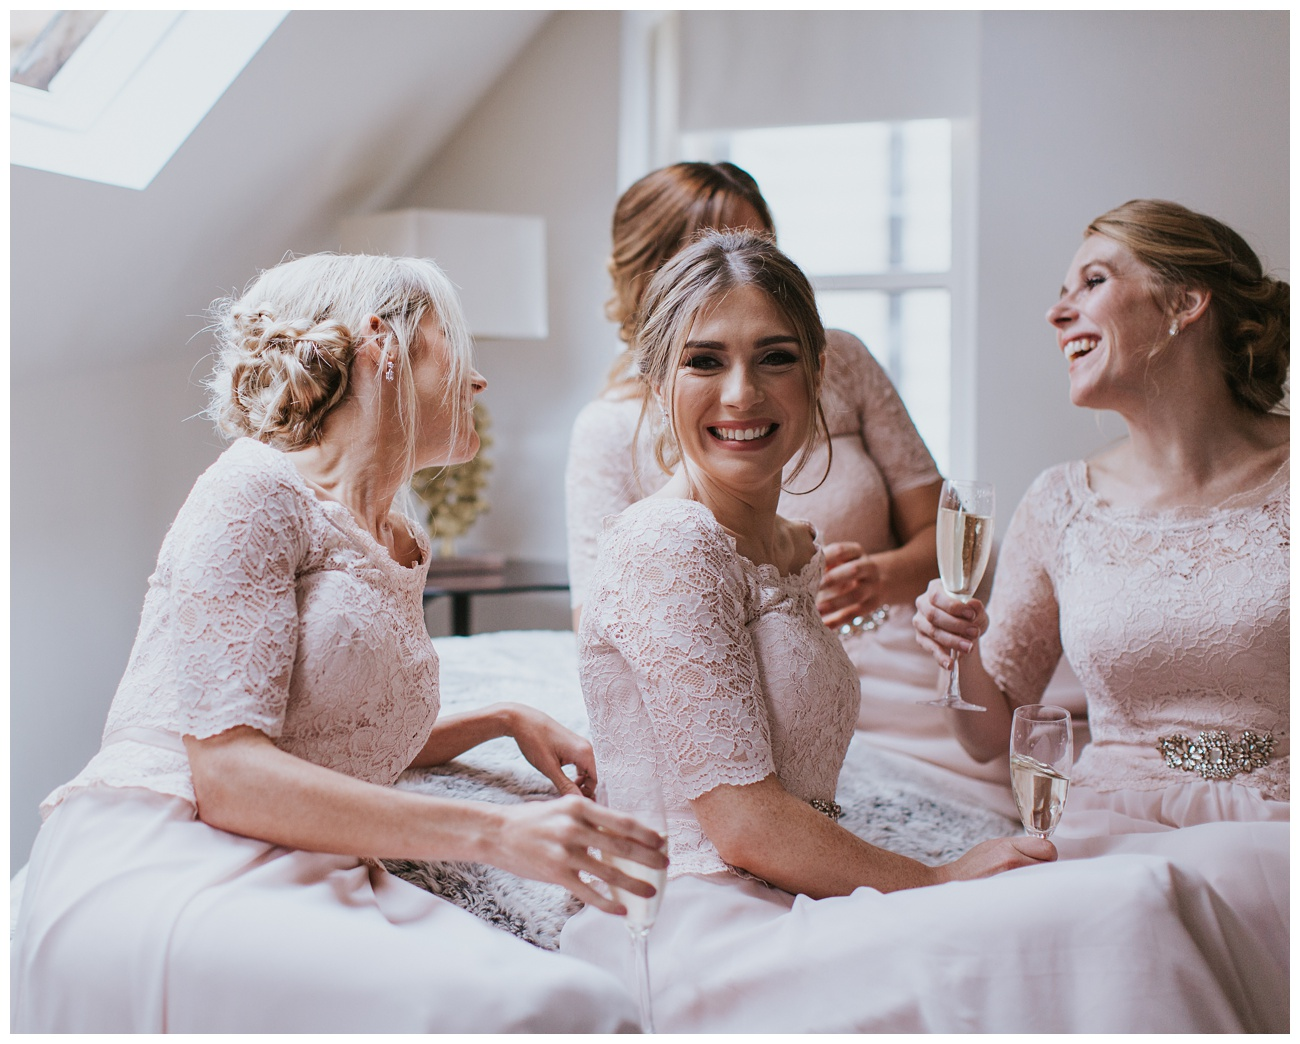 The bridesmaids laugh and drink champagne inside the bridal cottage